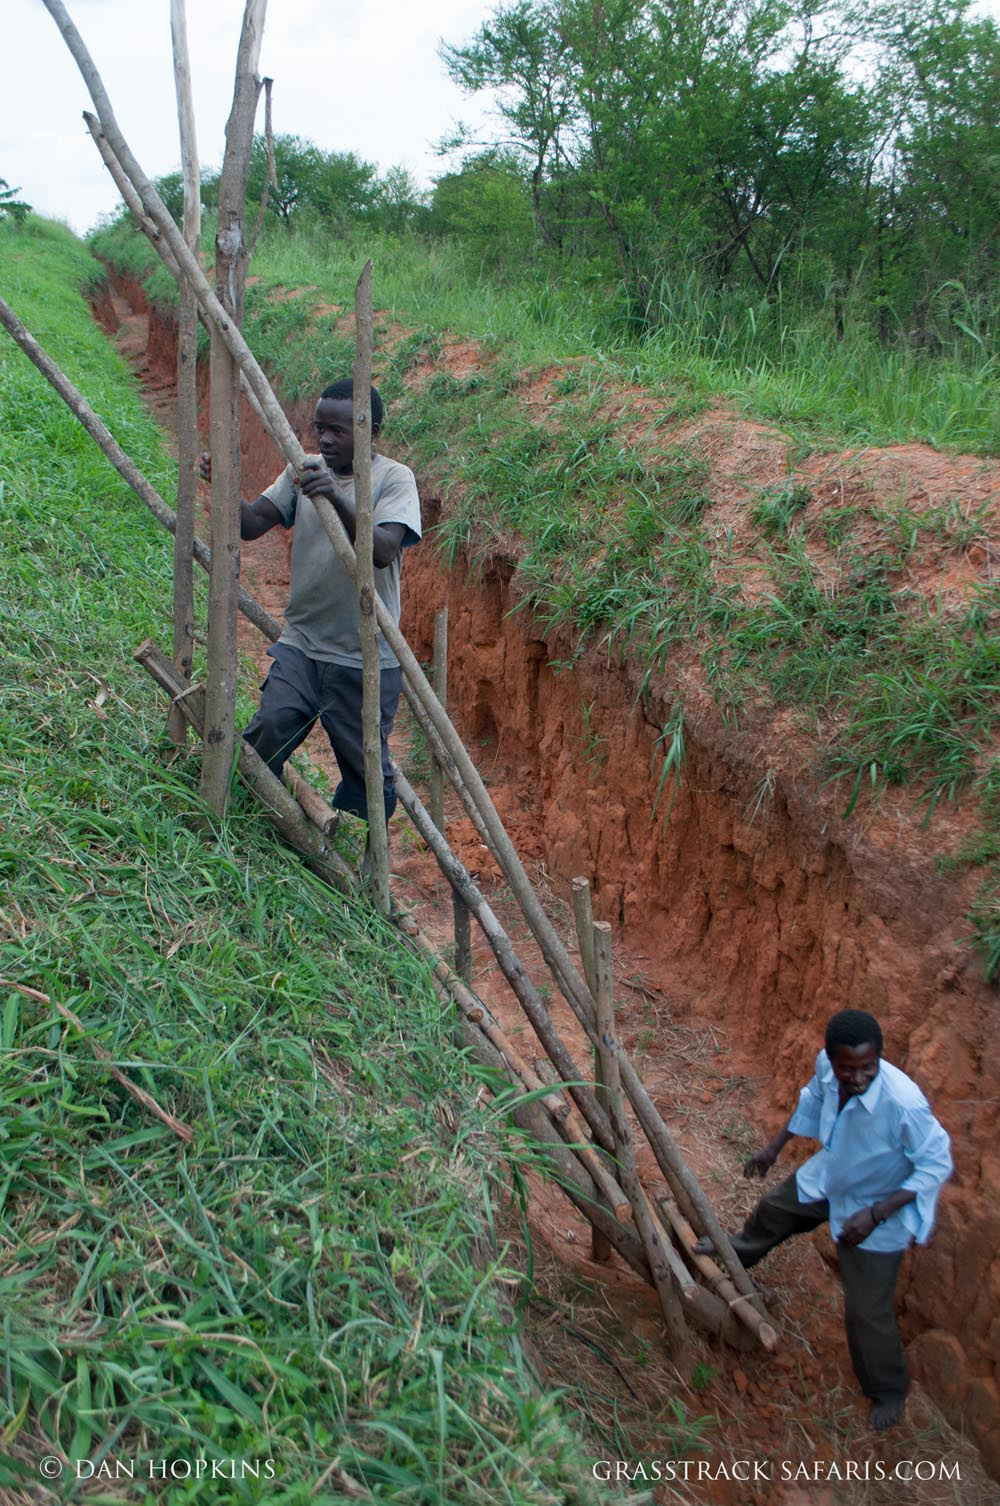 Accessing the trench on a homemade ladder. The park boundary is on the right side.